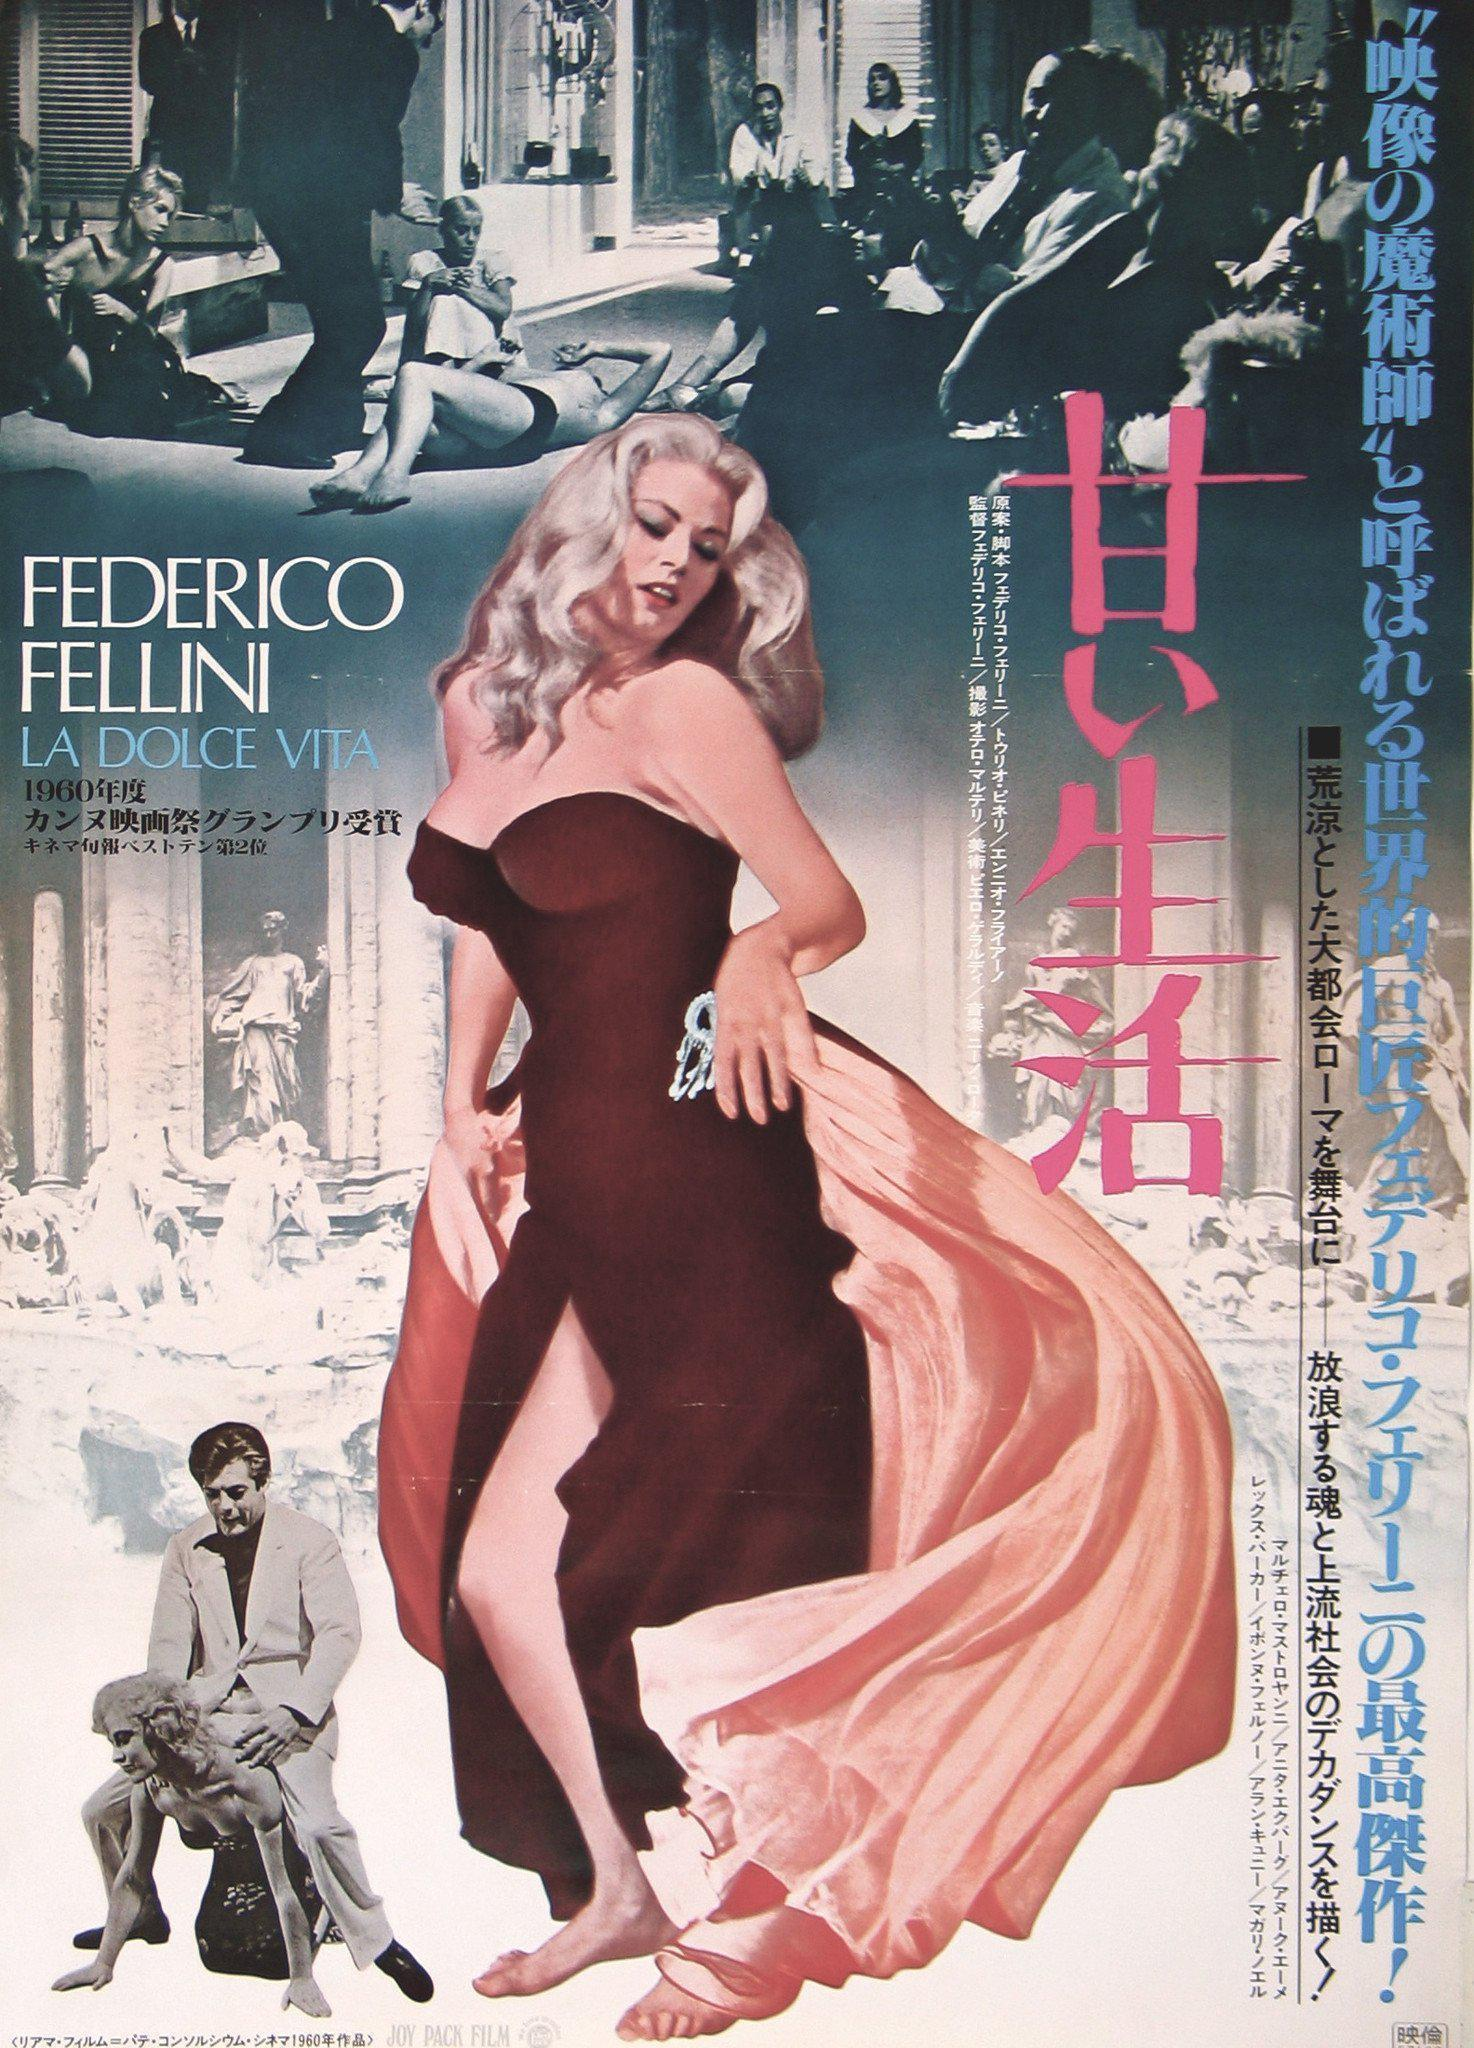 La Dolce Vita Japanese 1 panel (20x29) Original Vintage Movie Poster